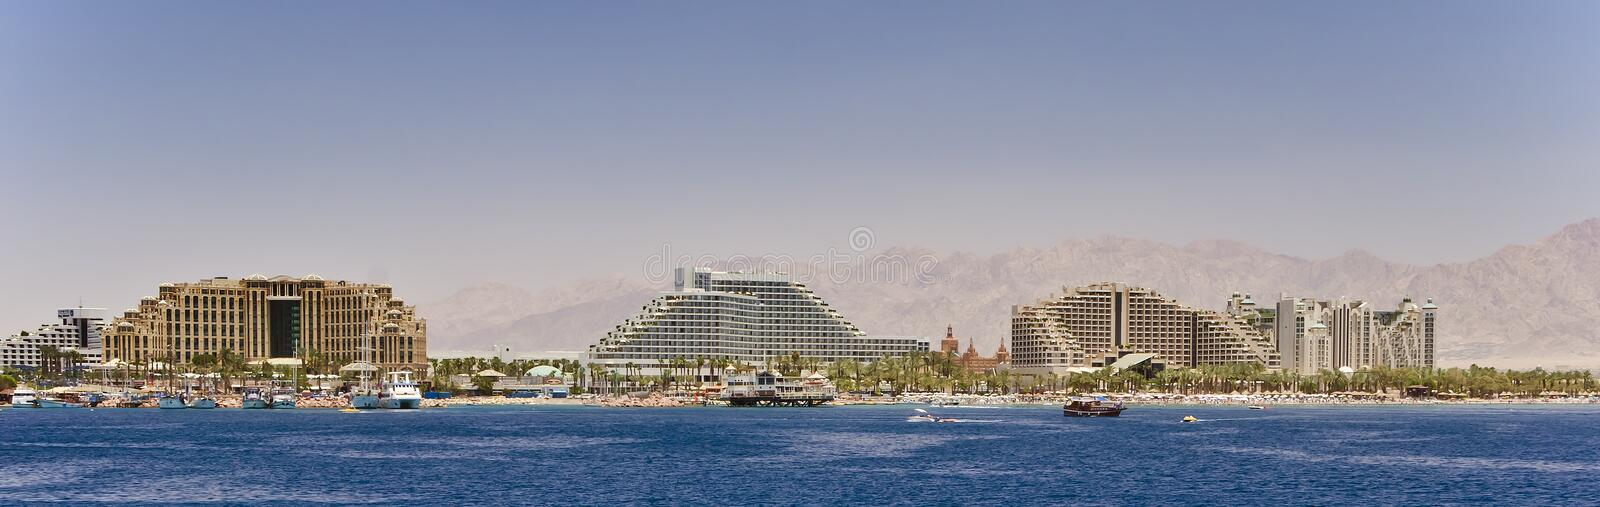 Panoramic view on northern beach of Eilat, Israel. The shot was taken from a pleasure boat near northern beach of Eilat - famous resort city of Israel stock photos